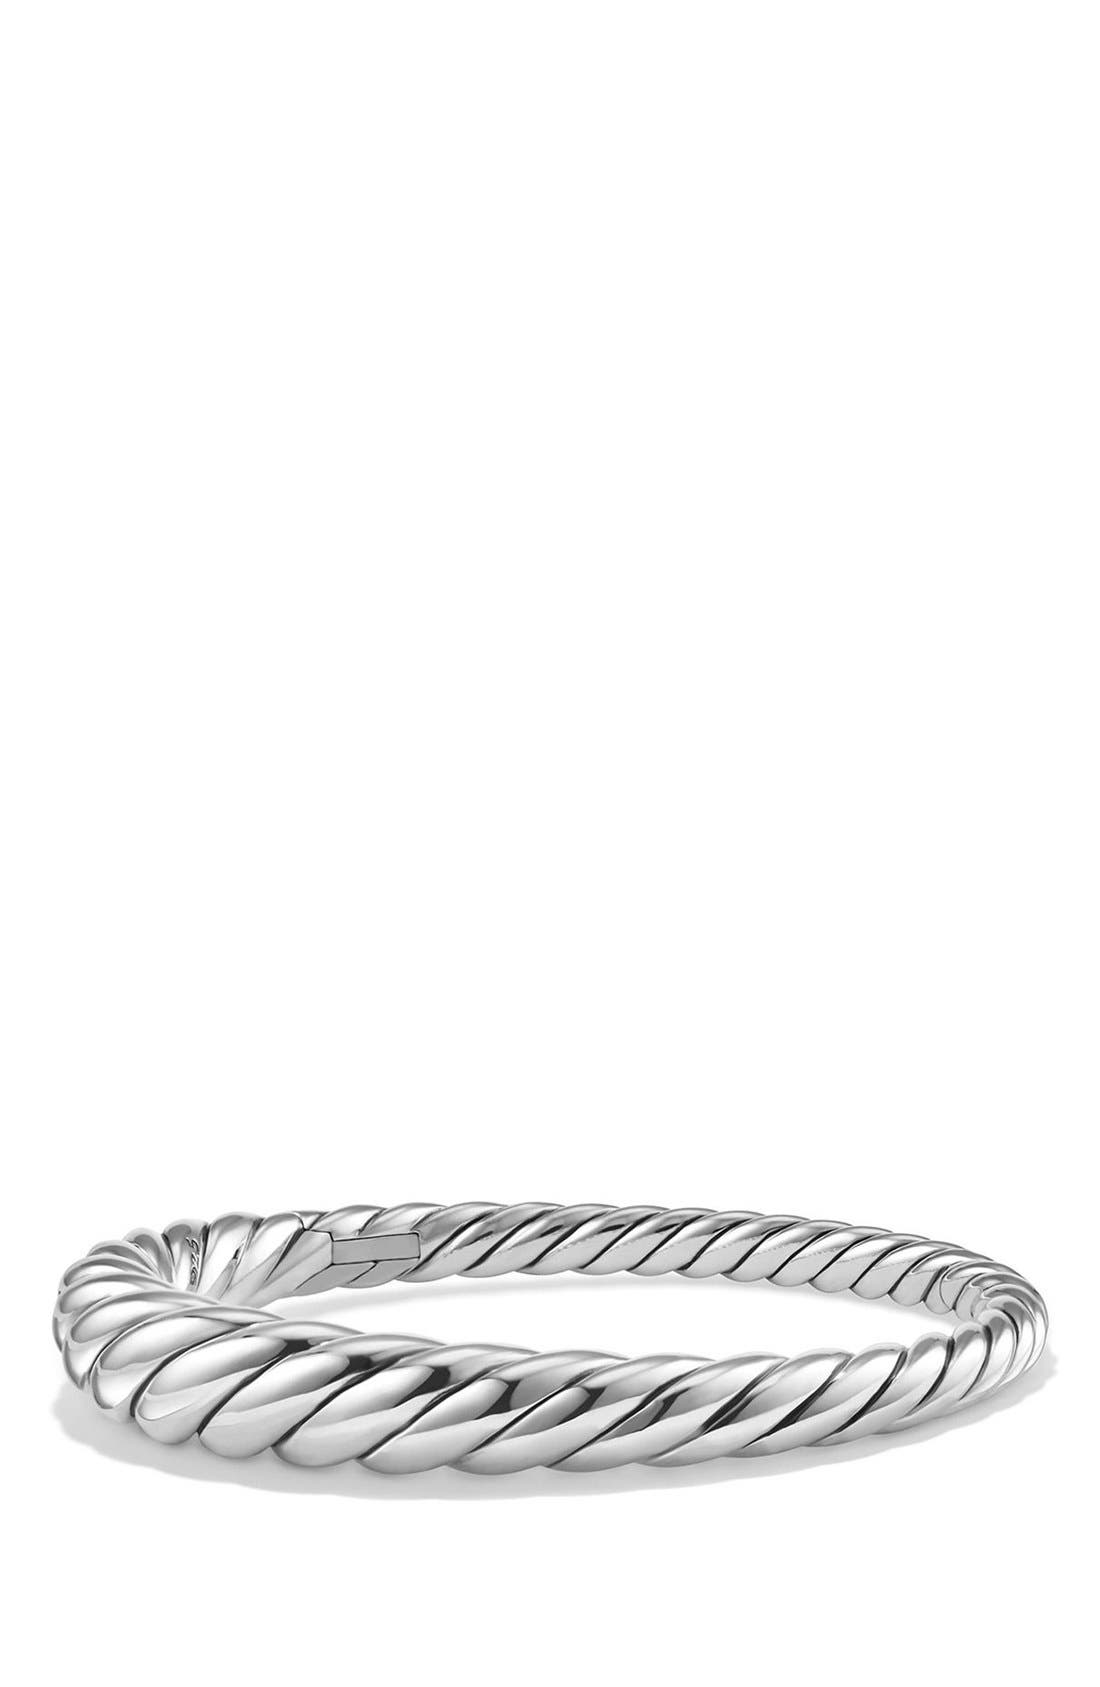 'Pure Form' Small Cable Bracelet,                         Main,                         color, SILVER